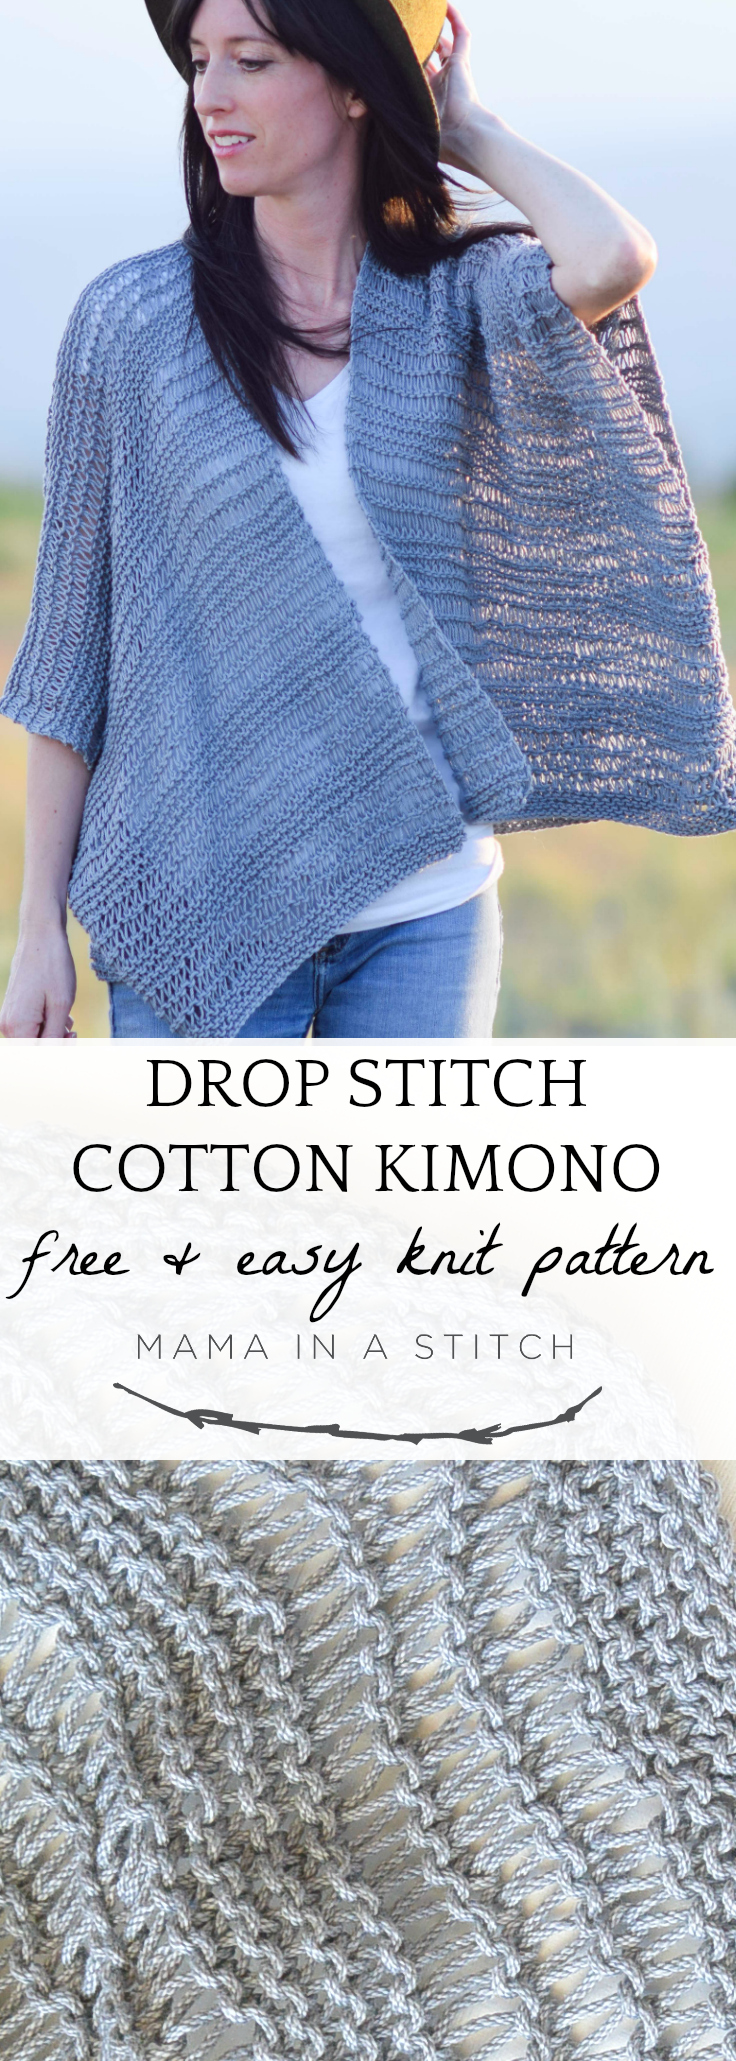 This super easy knitting pattern makes a gorgeous kimono, perfect for summer time! Free pattern as well as photos to show you how to assemble.  Such a fun cardigan to make even for beginners. #summer #diy #knittingpattern